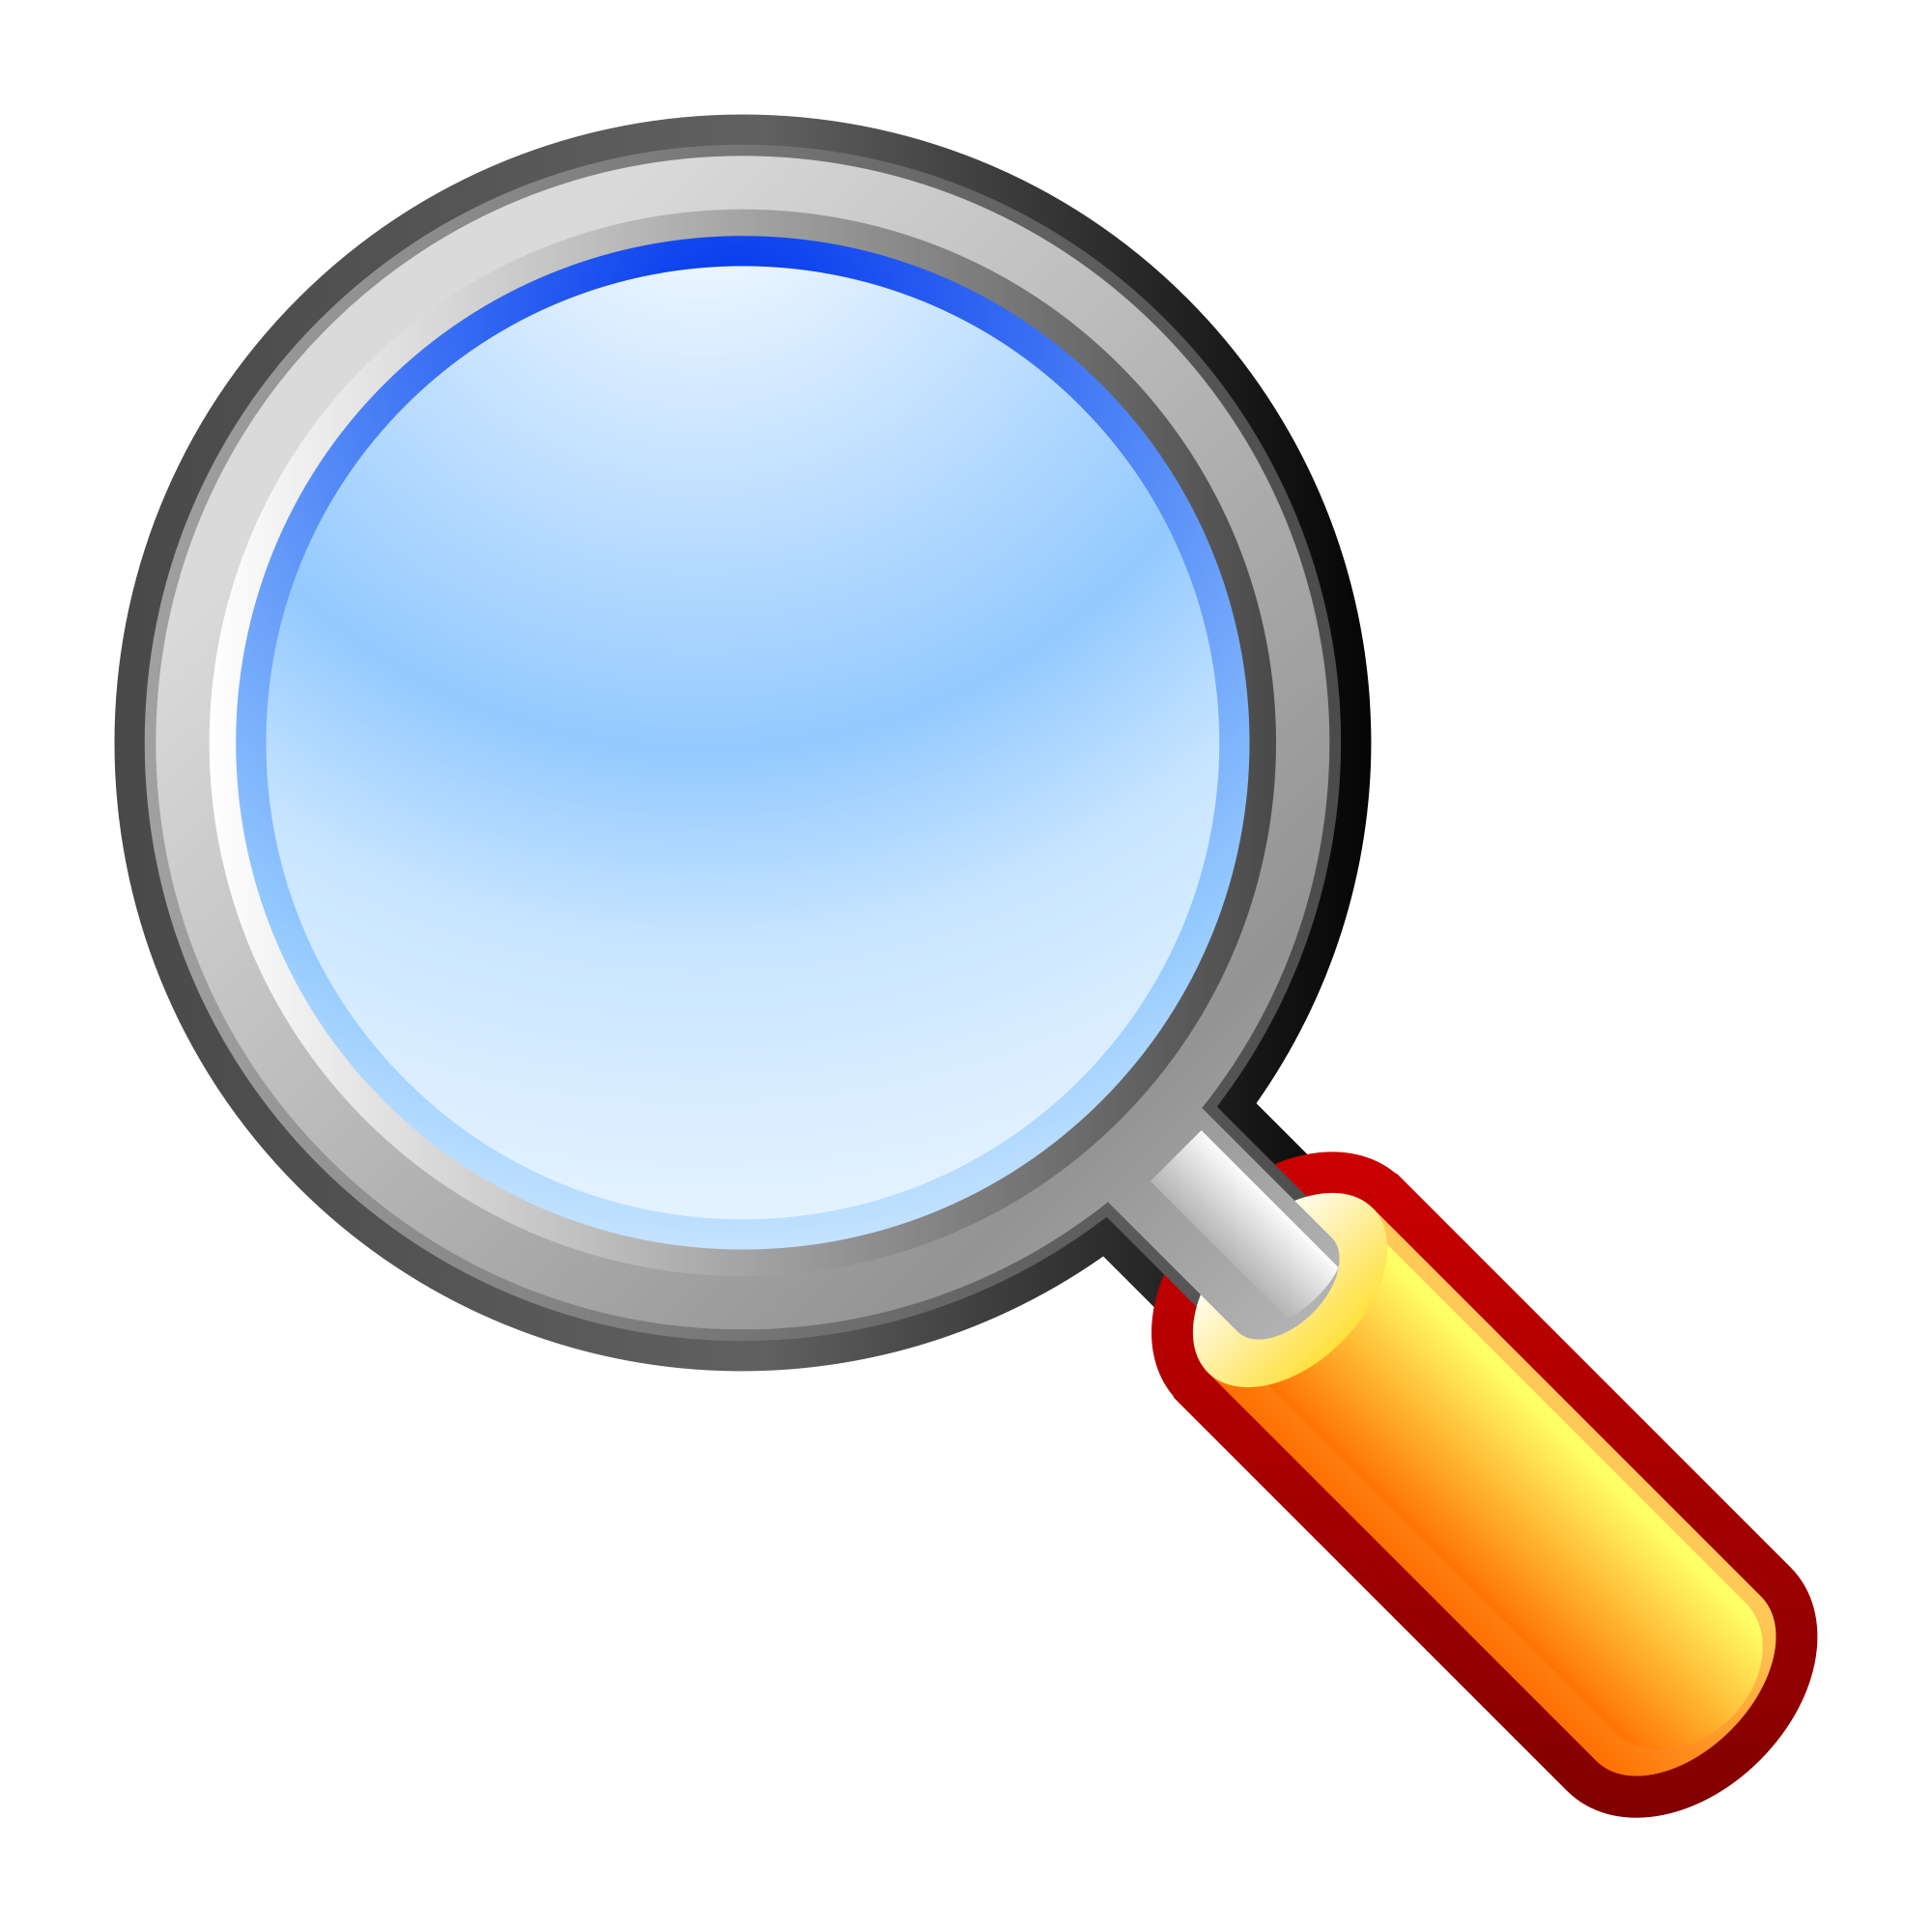 2000x2000 Magnifying Glass Clip Art Magnifying Glass Vector Image Image 2